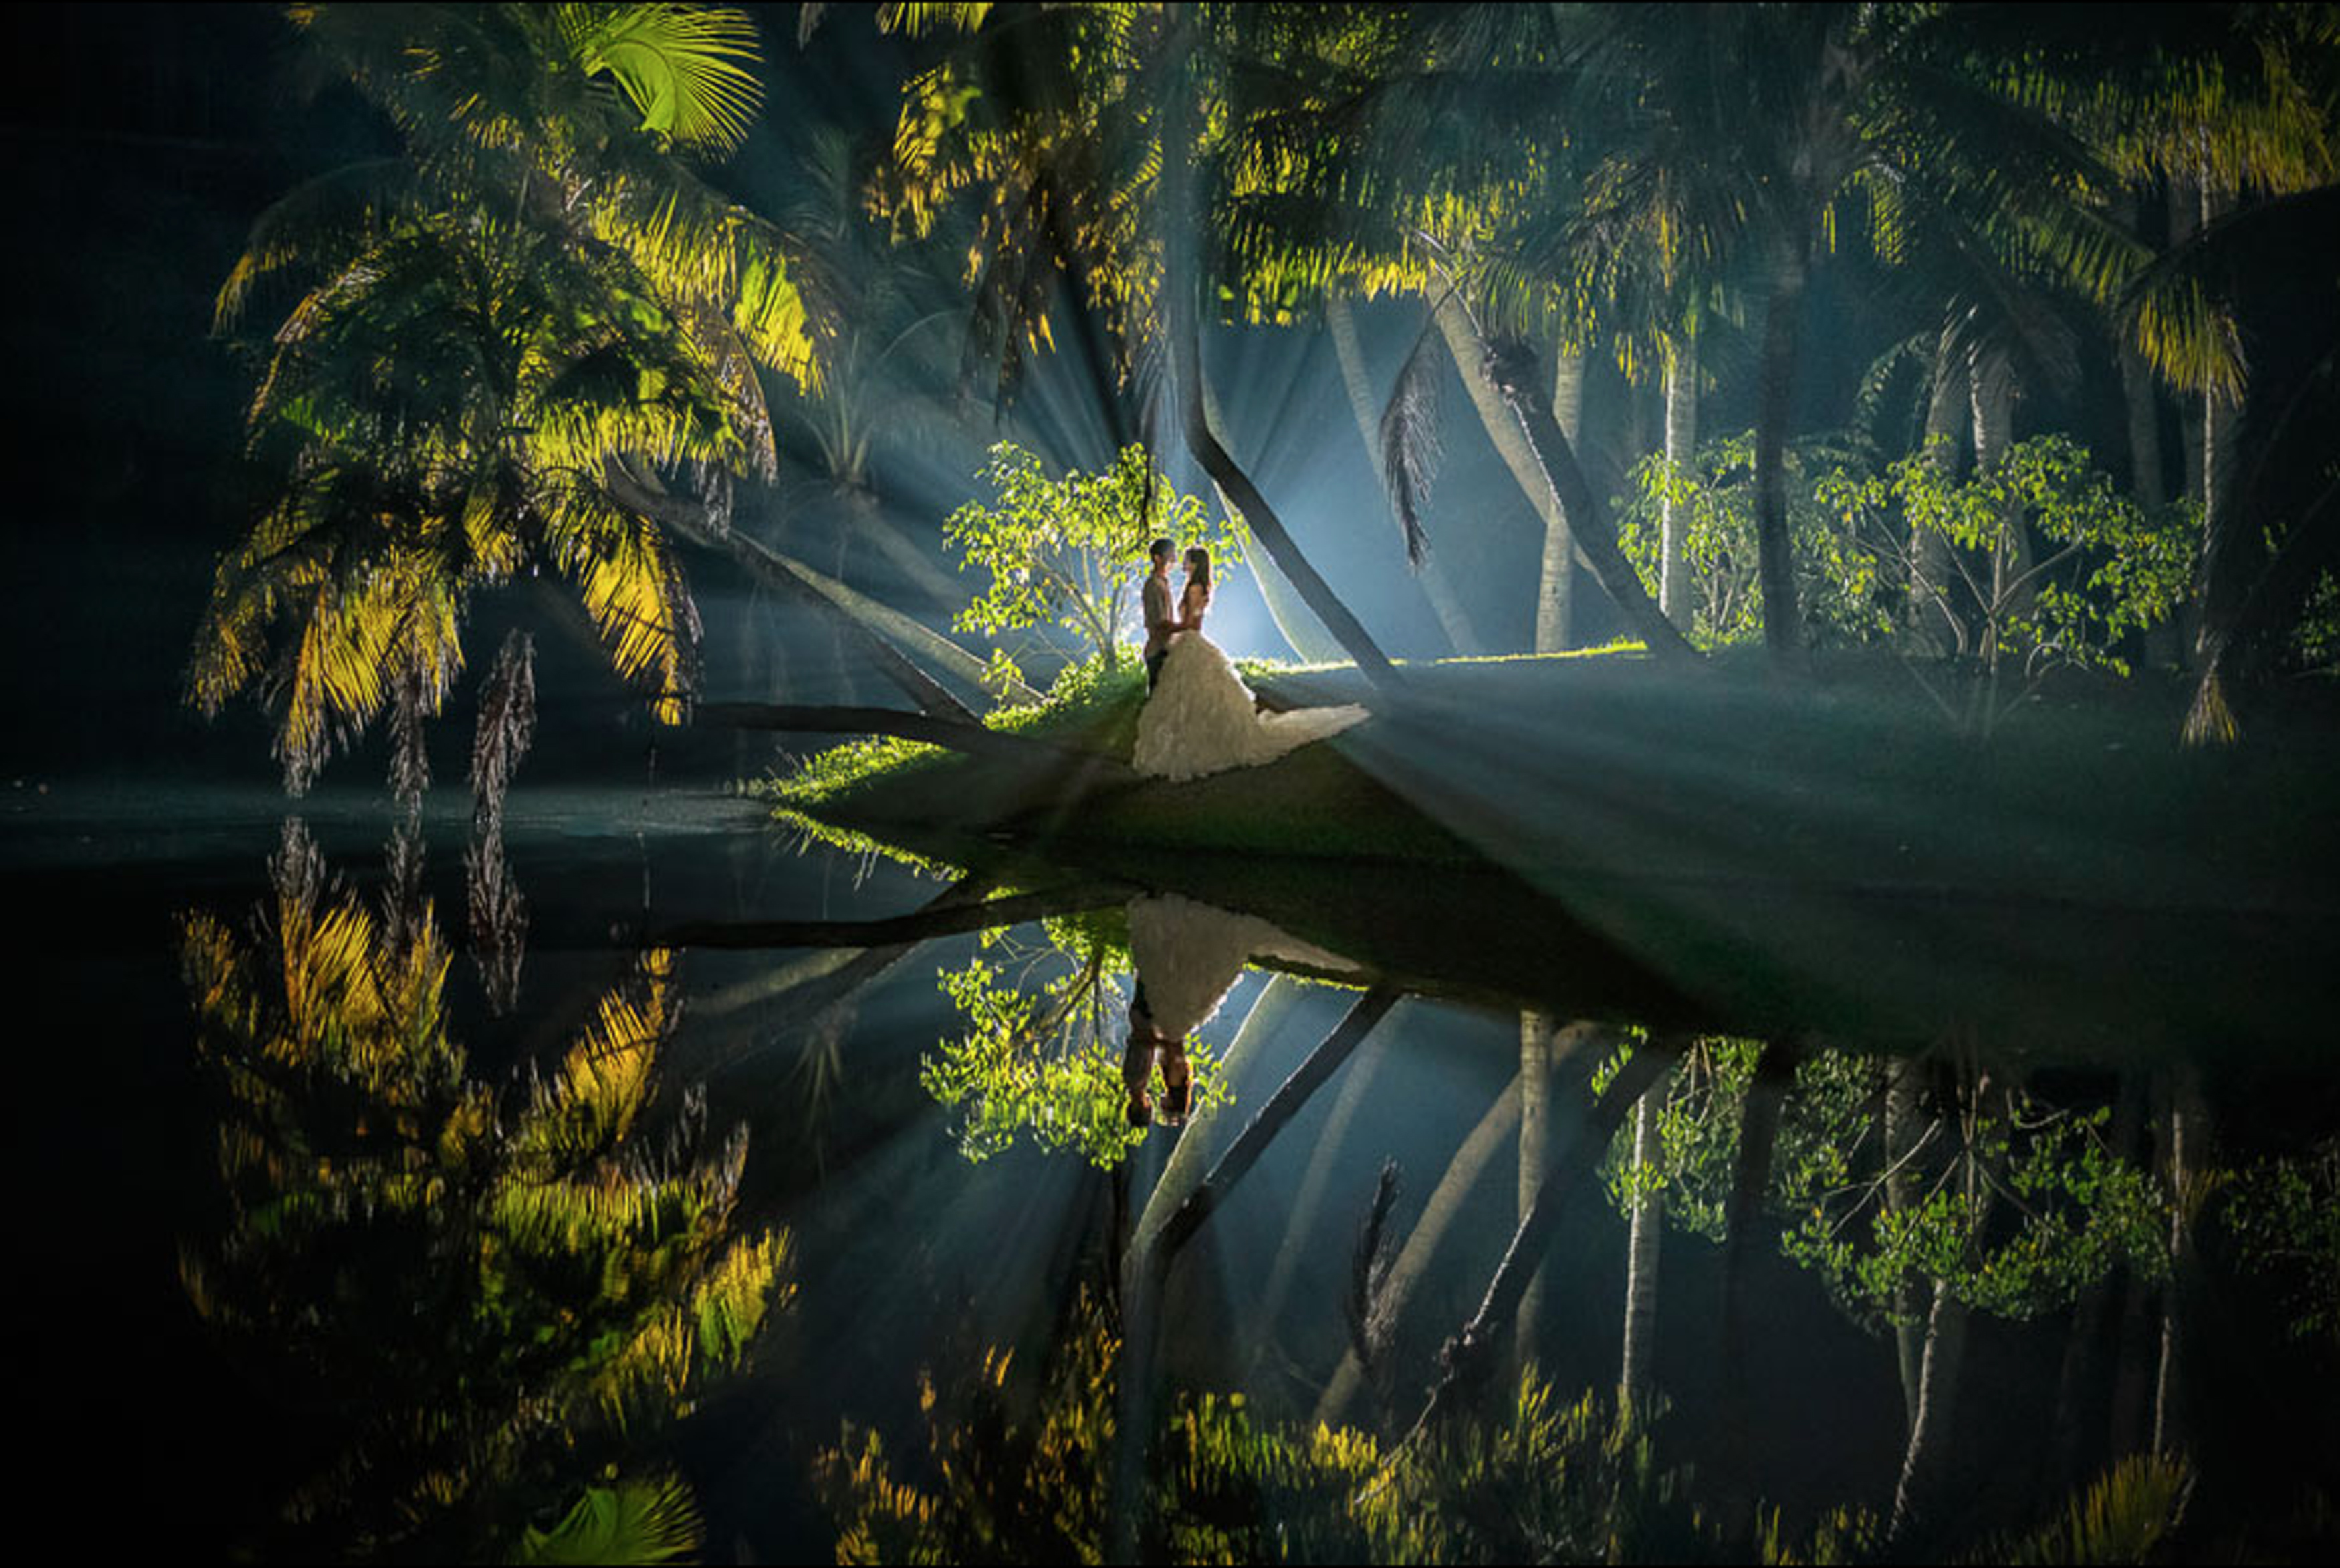 Here comes the prize world 39 s best wedding photos of 2014 for The best wedding photographers